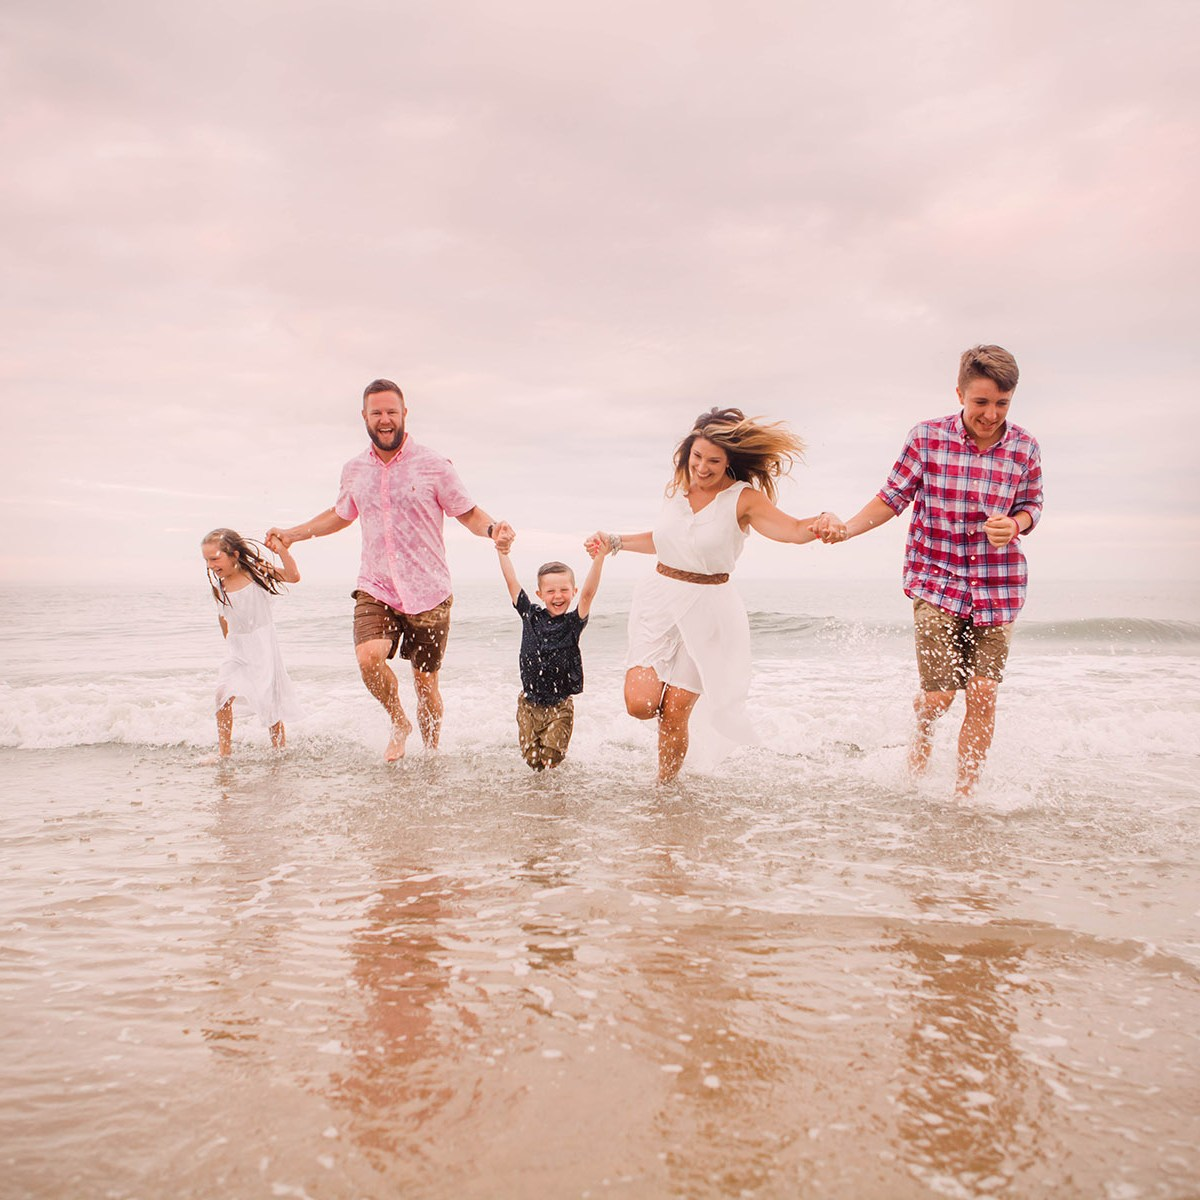 family photographer, pa family photographer, delaware family photographer, beach photographer, film, Pennsylvania, Delaware shore photographer